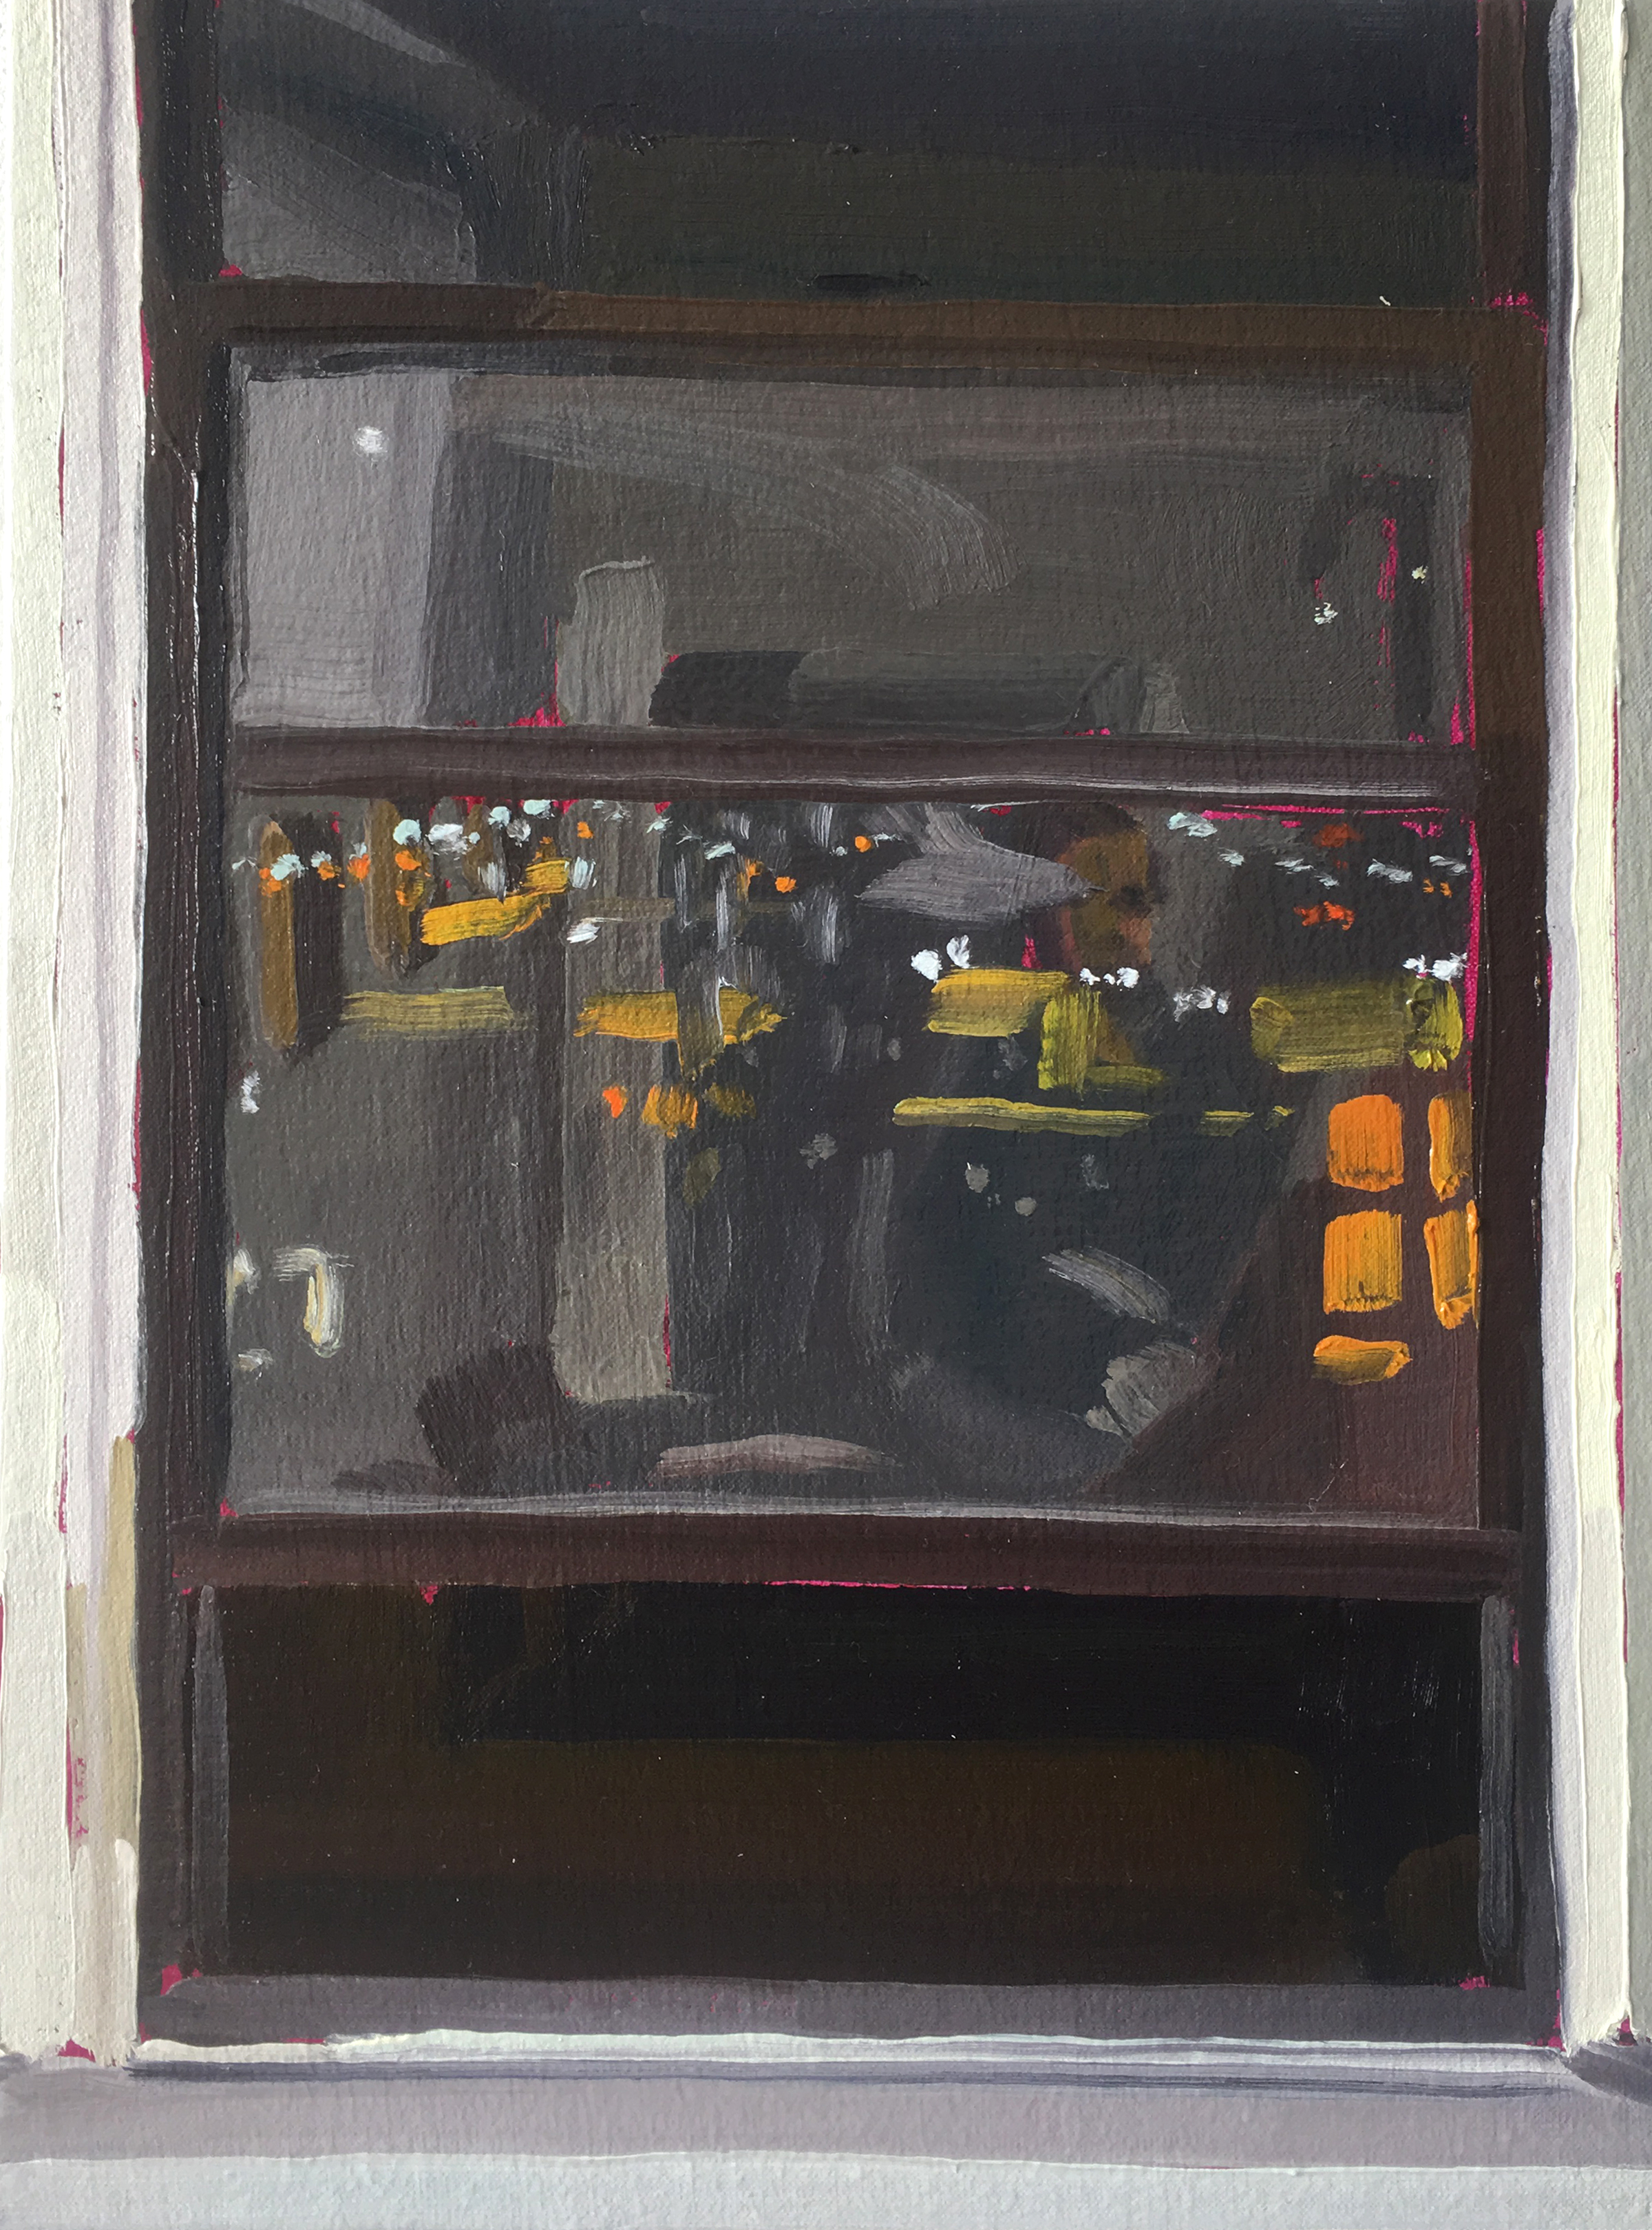 Keiran Brennan Hinton, Studio Window at Night (2), 2016, oil on linen, 12 x 9 inches  SOLD